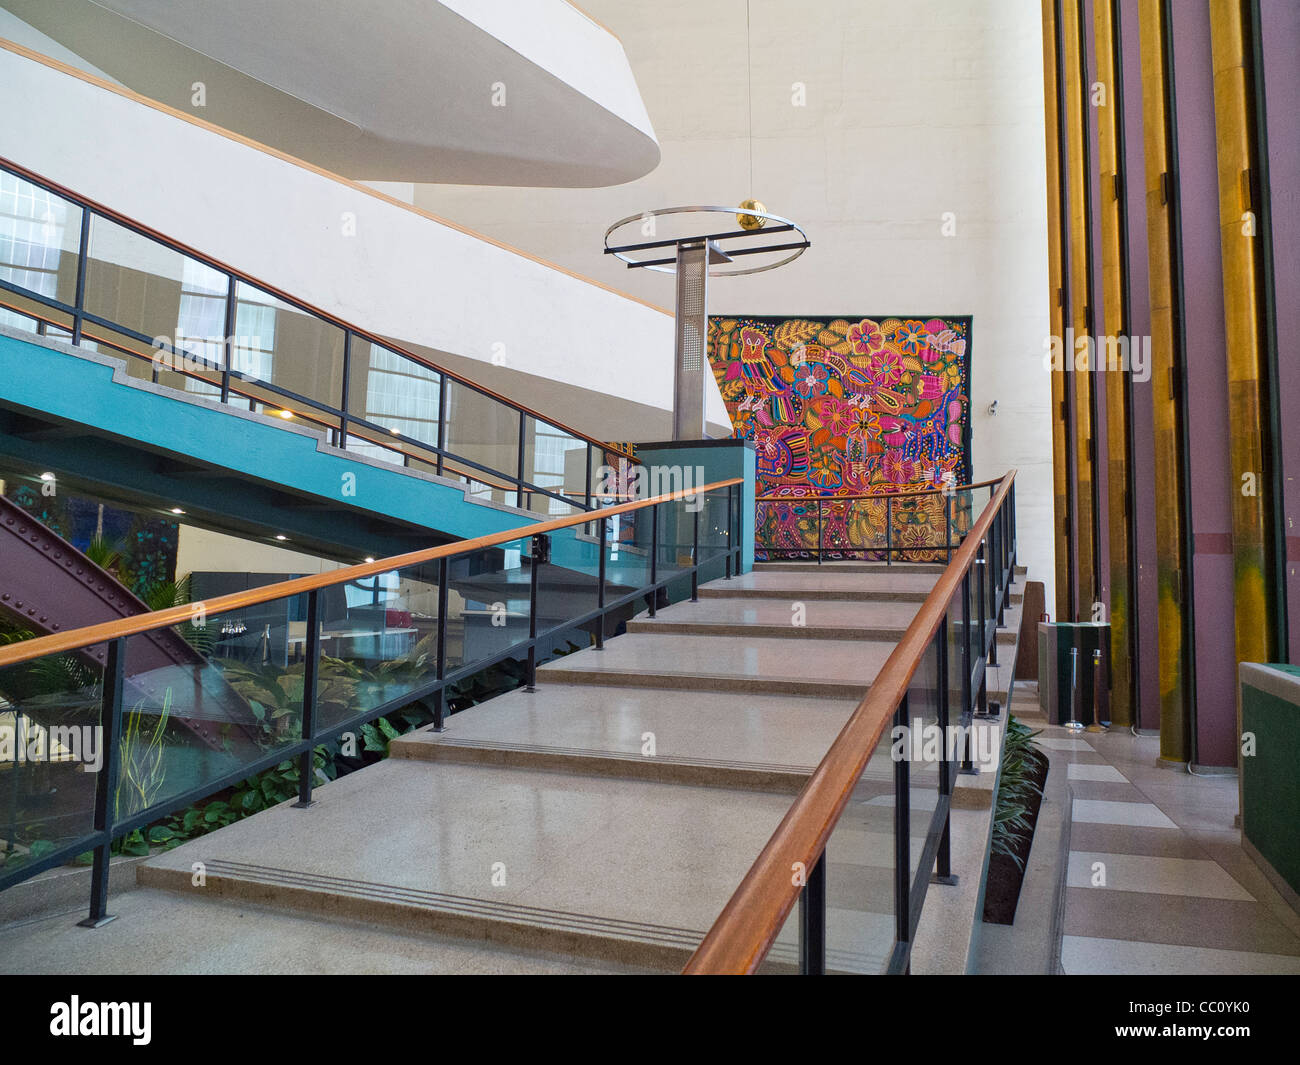 united nations interior entrance stock photo 41818308 alamy rh alamy com